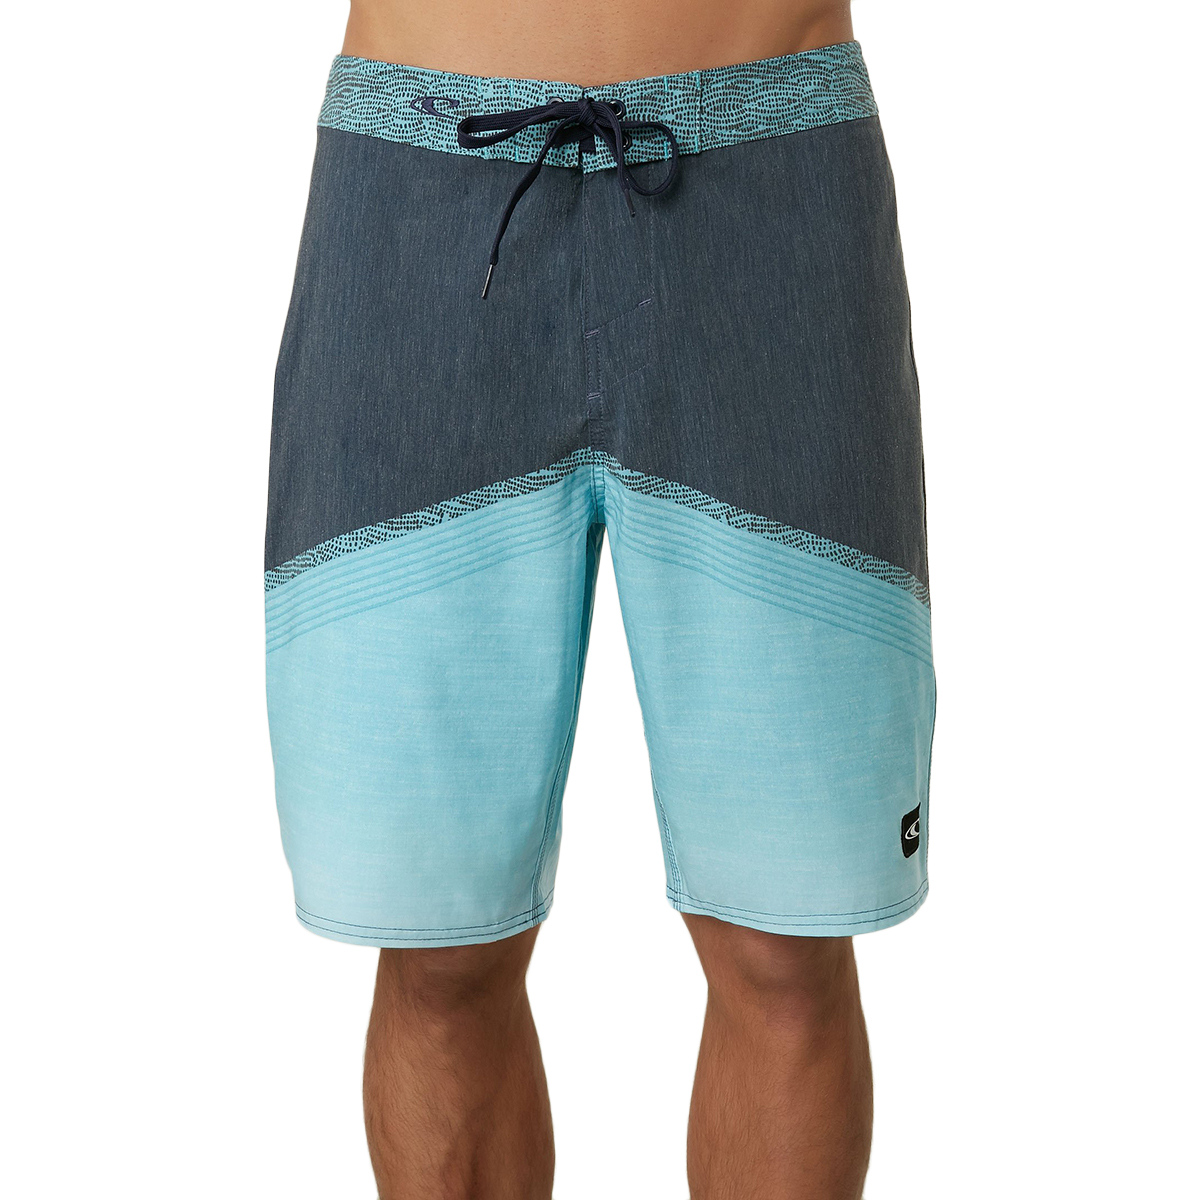 O'neill Guys' Cooper Walkshorts - Blue, 34